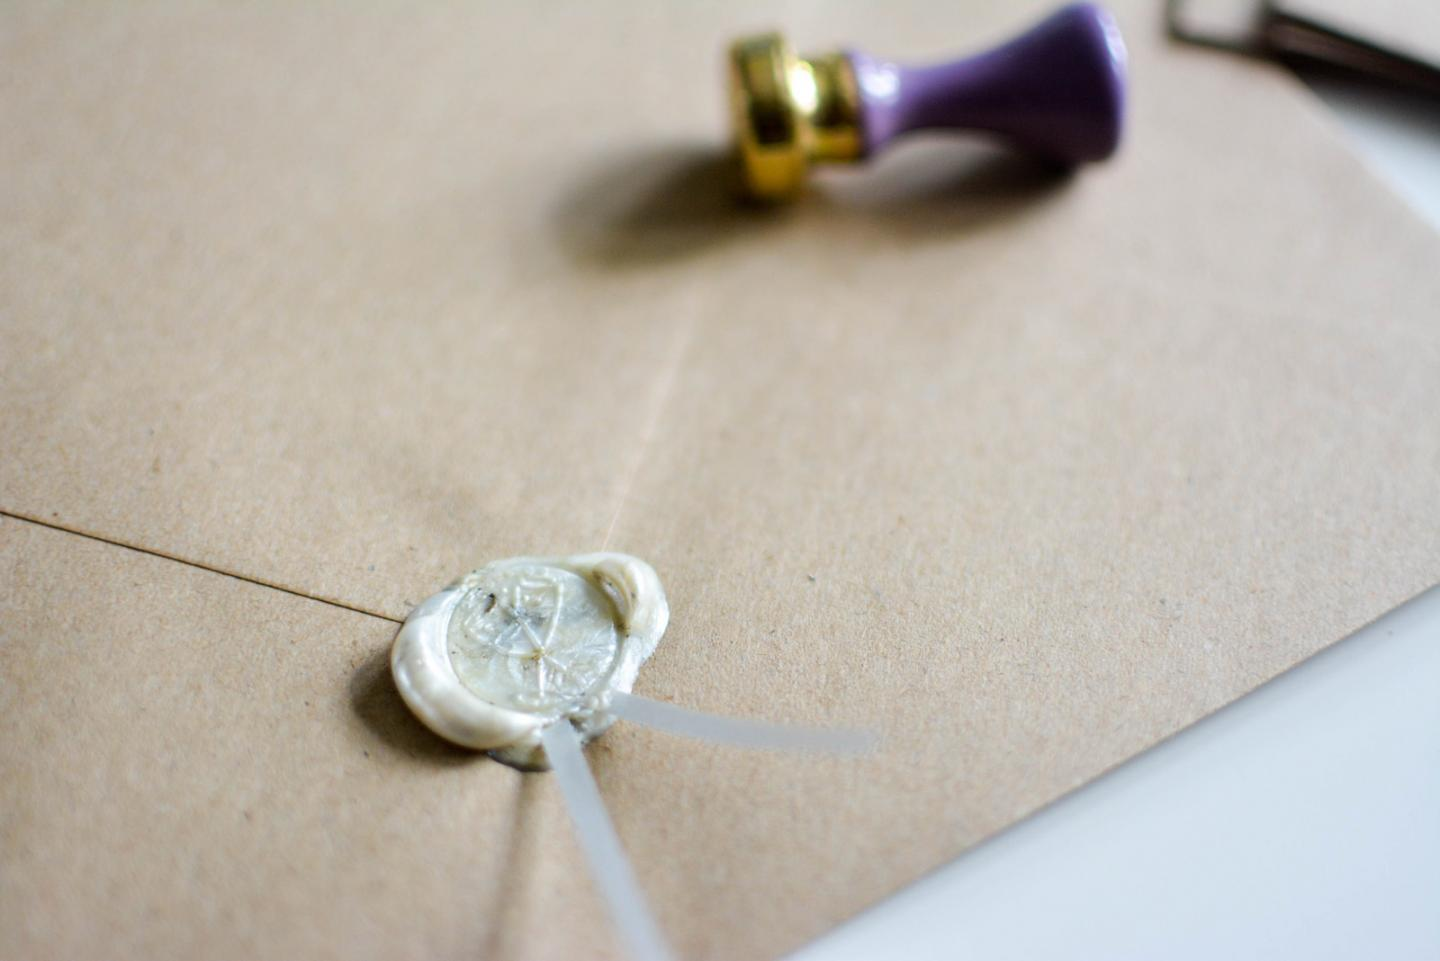 EJSTYLE Wedding - Wax seal stamp for wedding invitations